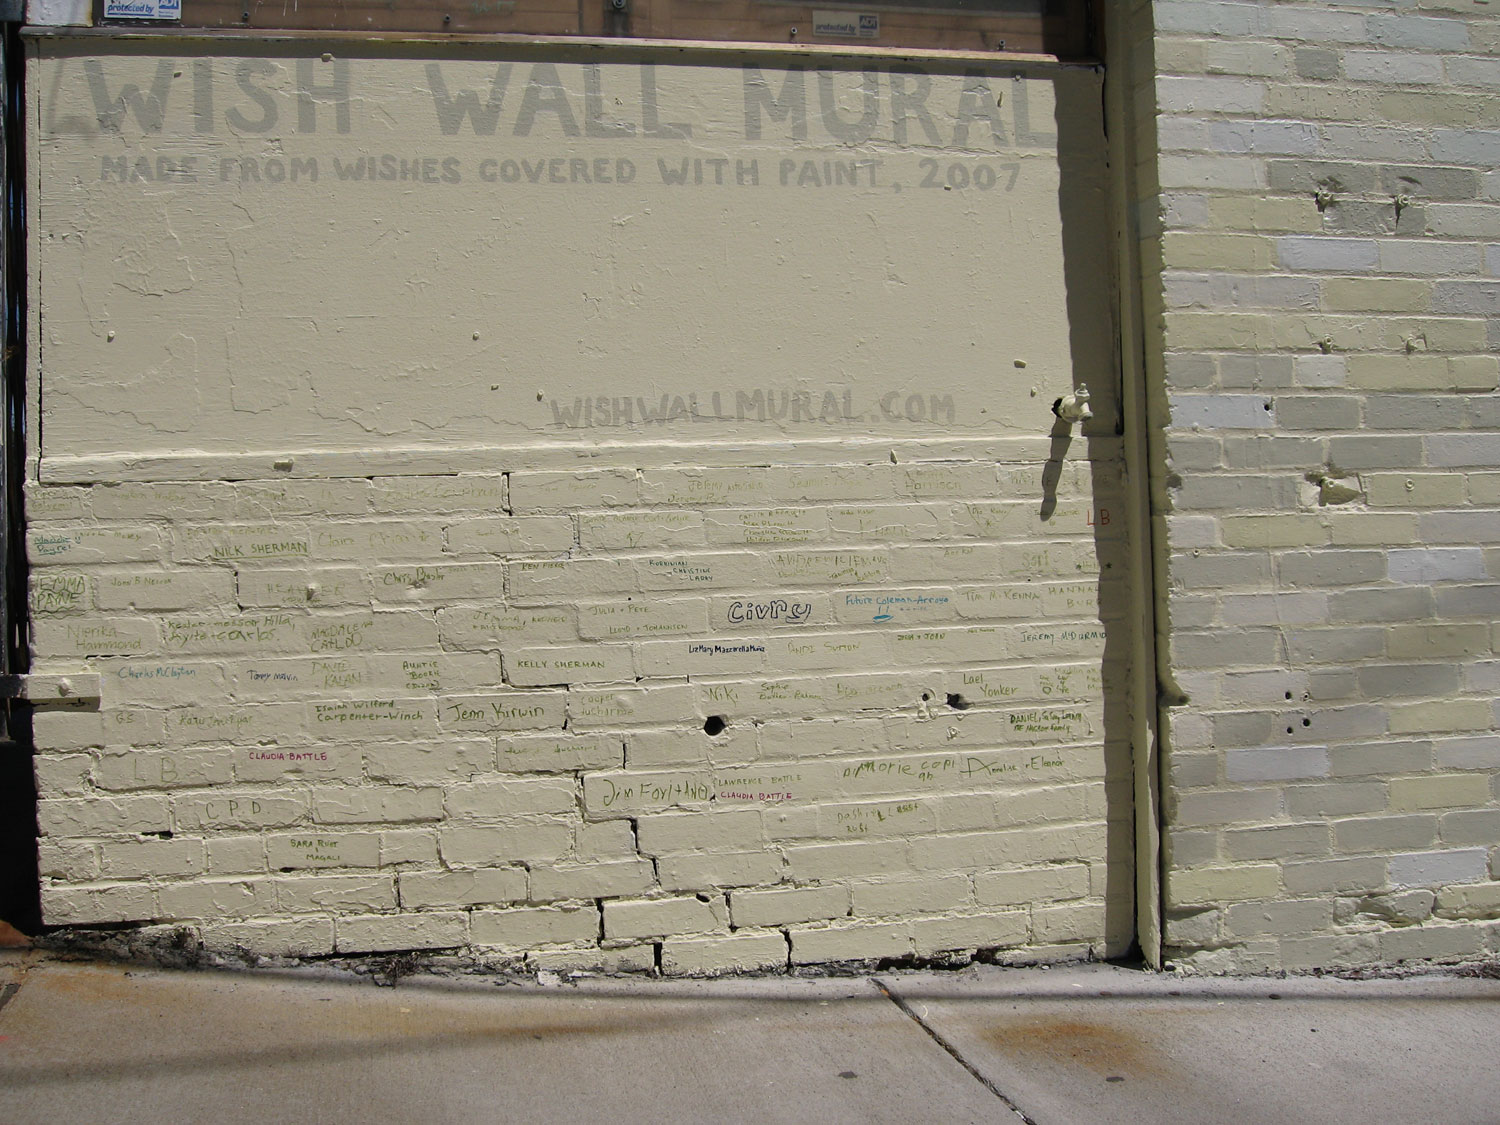 (detail) Wish Wall Mural